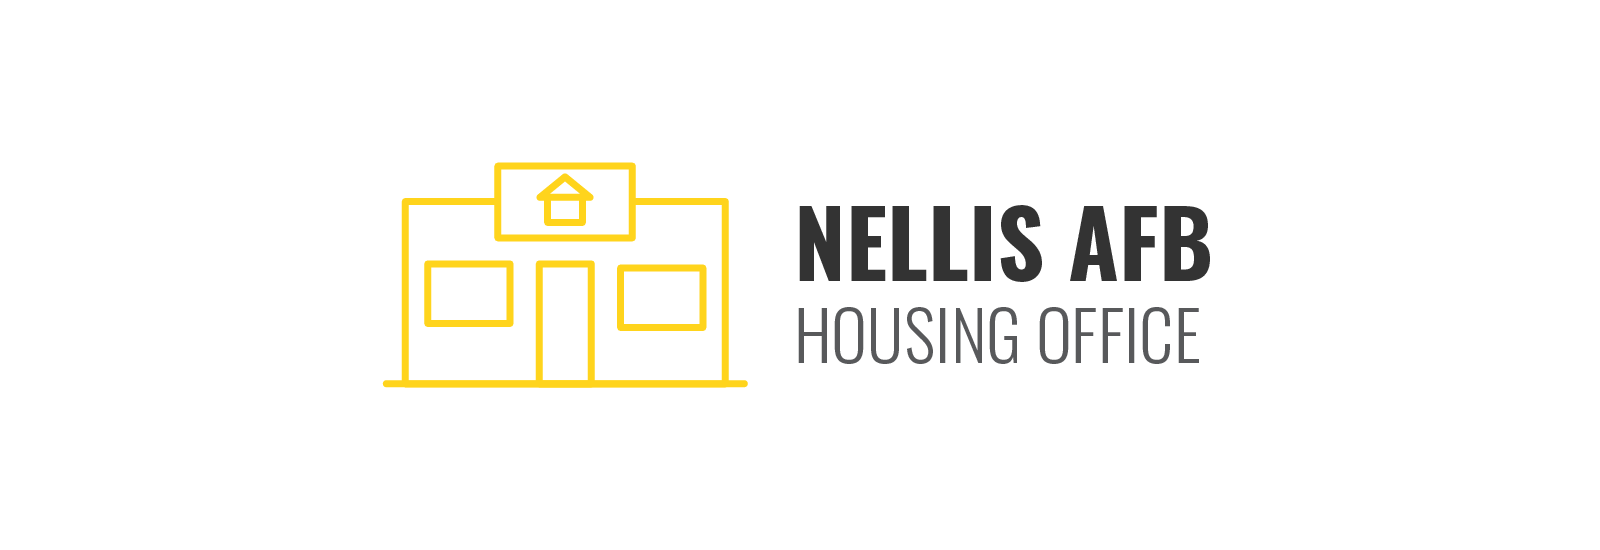 Nellis AFB Housing Office